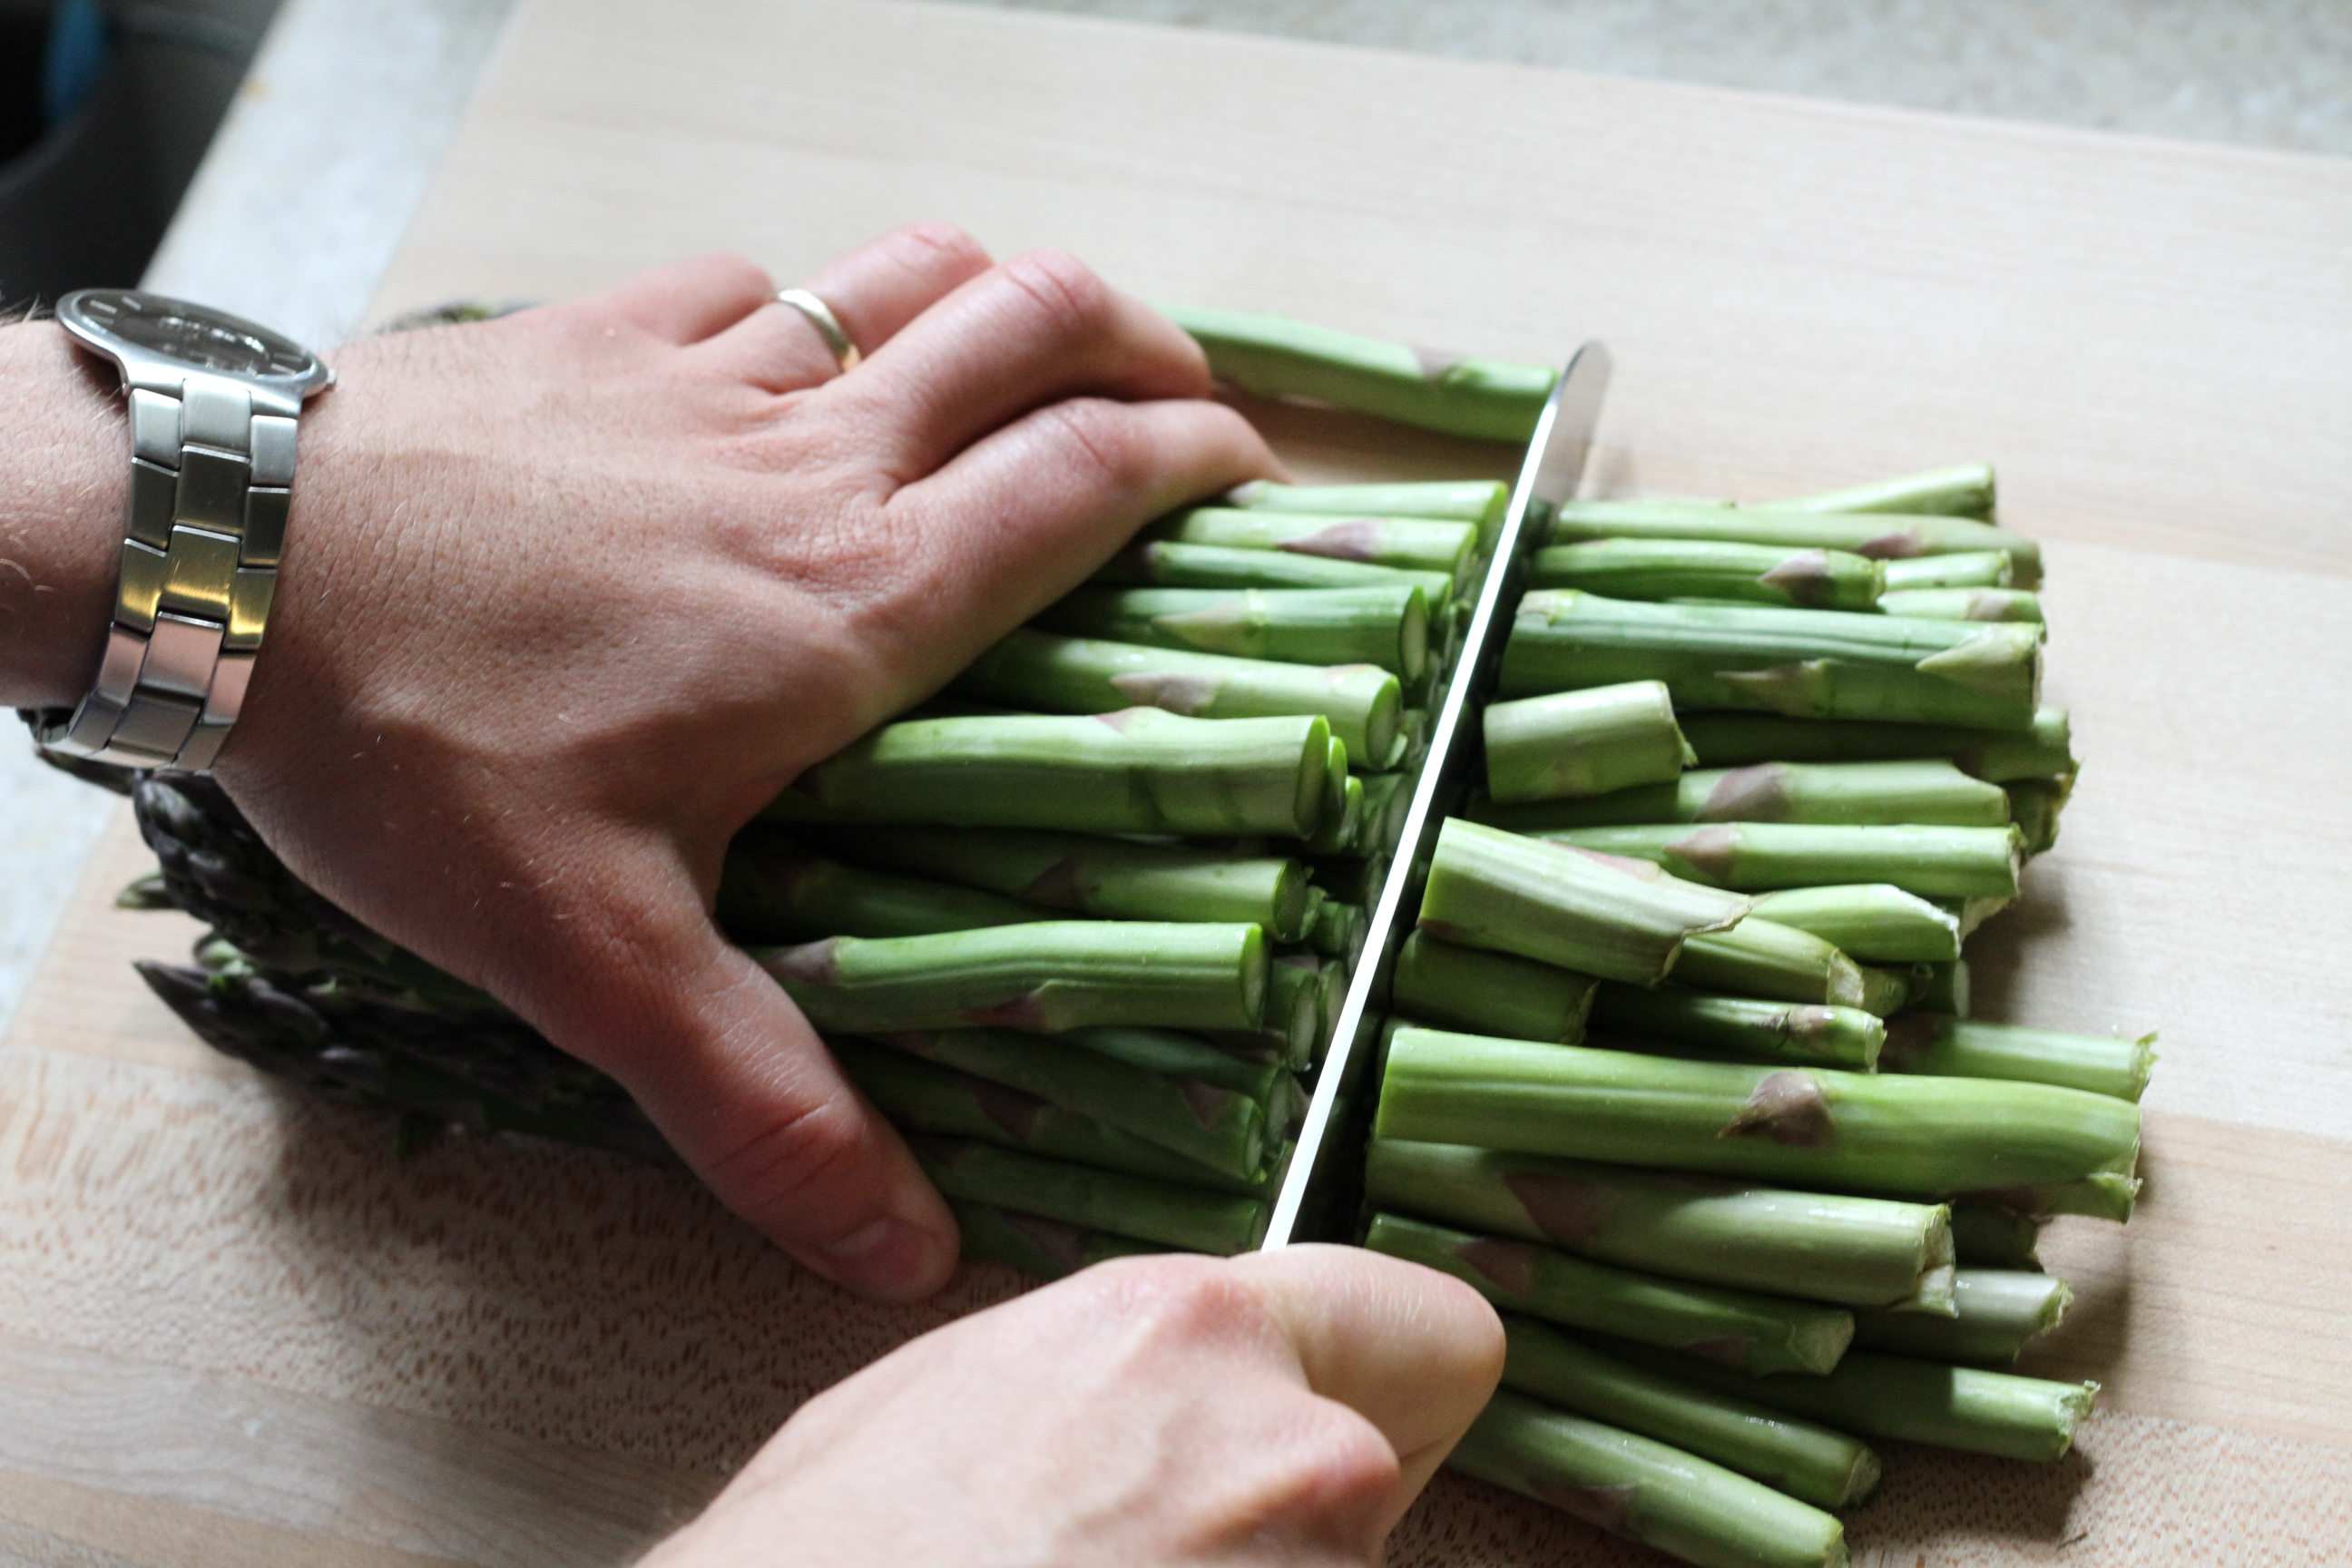 How To: Roast Asparagusa Step By Step Guide To Making This Tasty Side €�